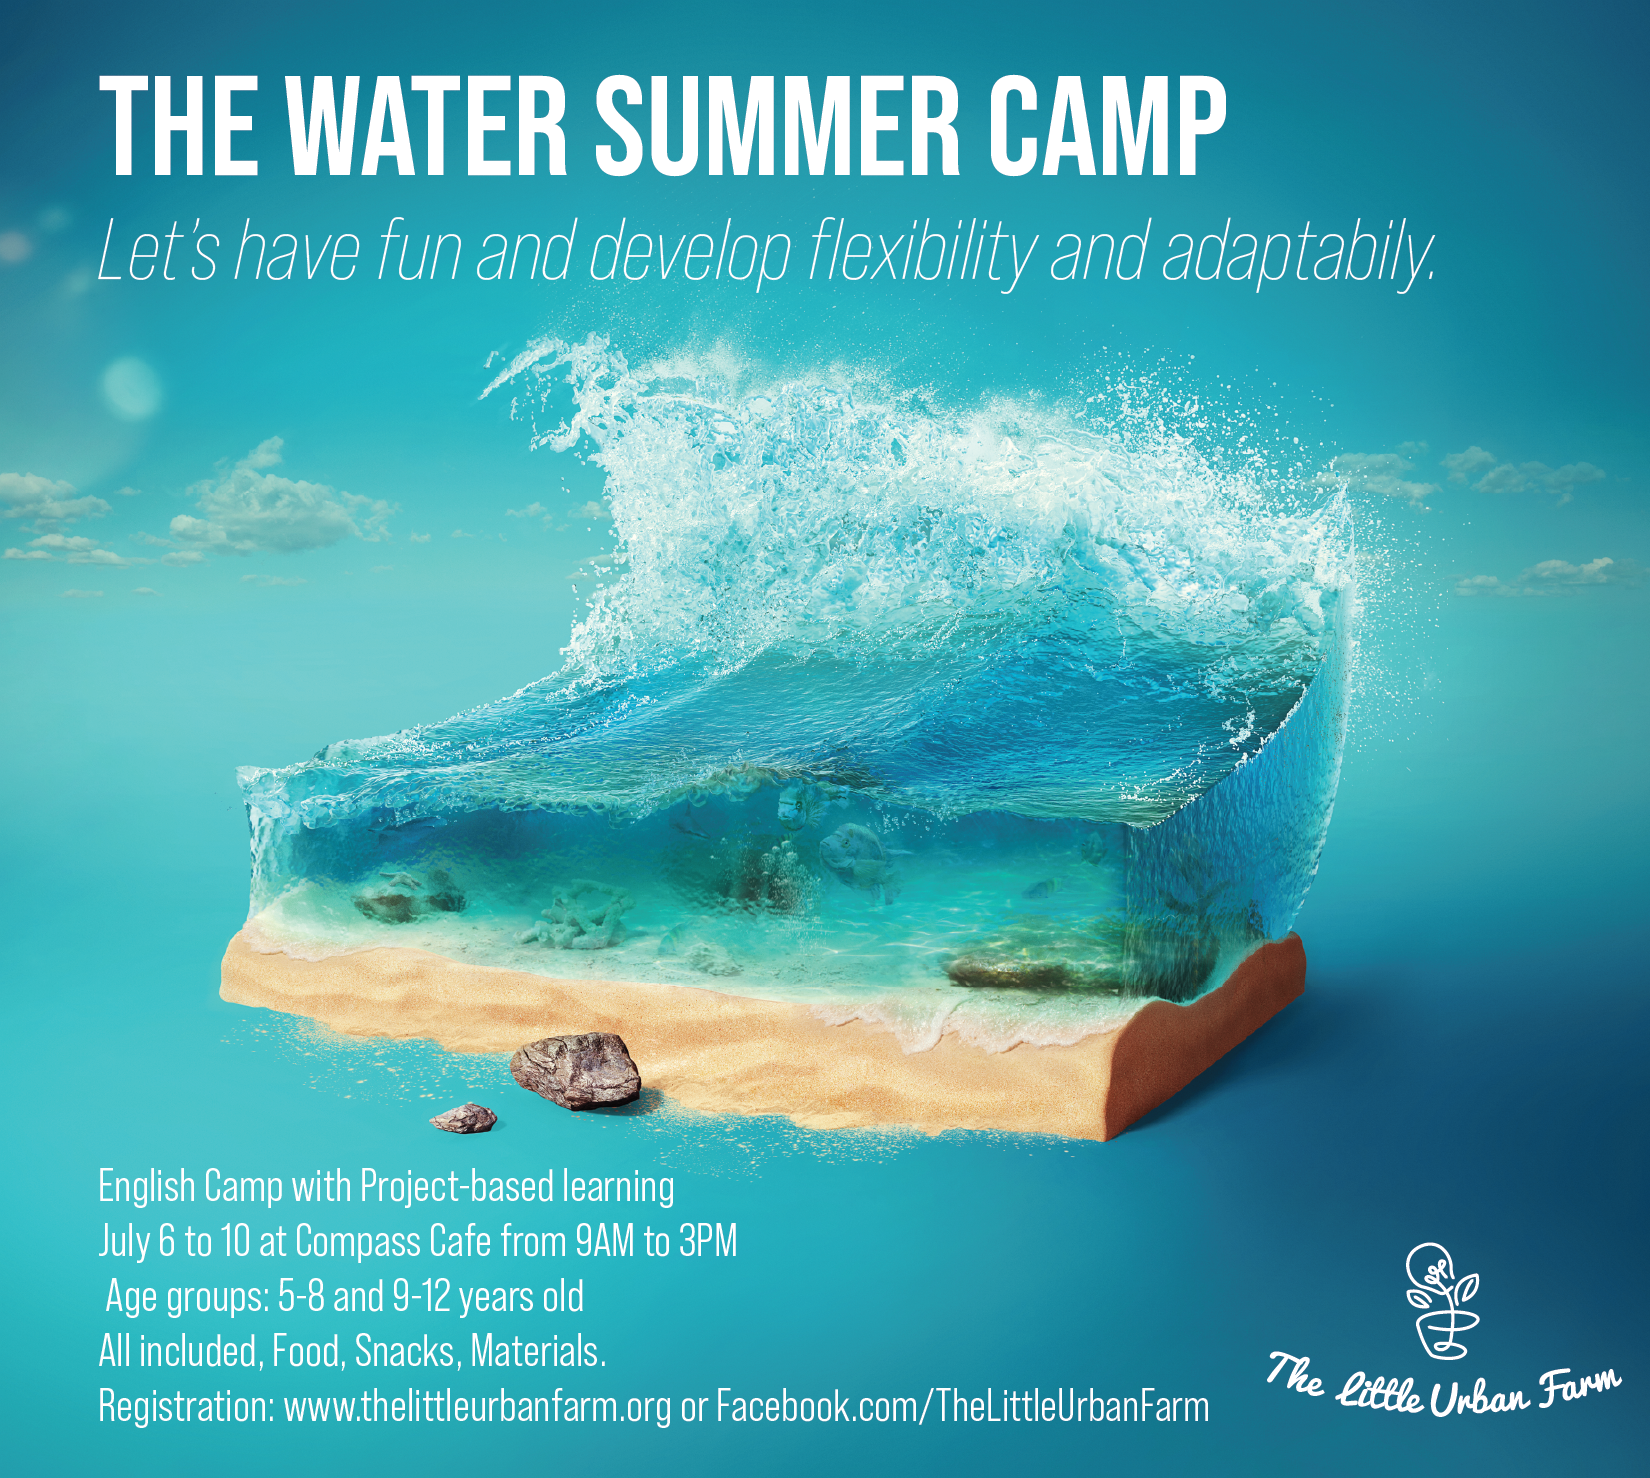 The Four Elements Summer Camp - Water